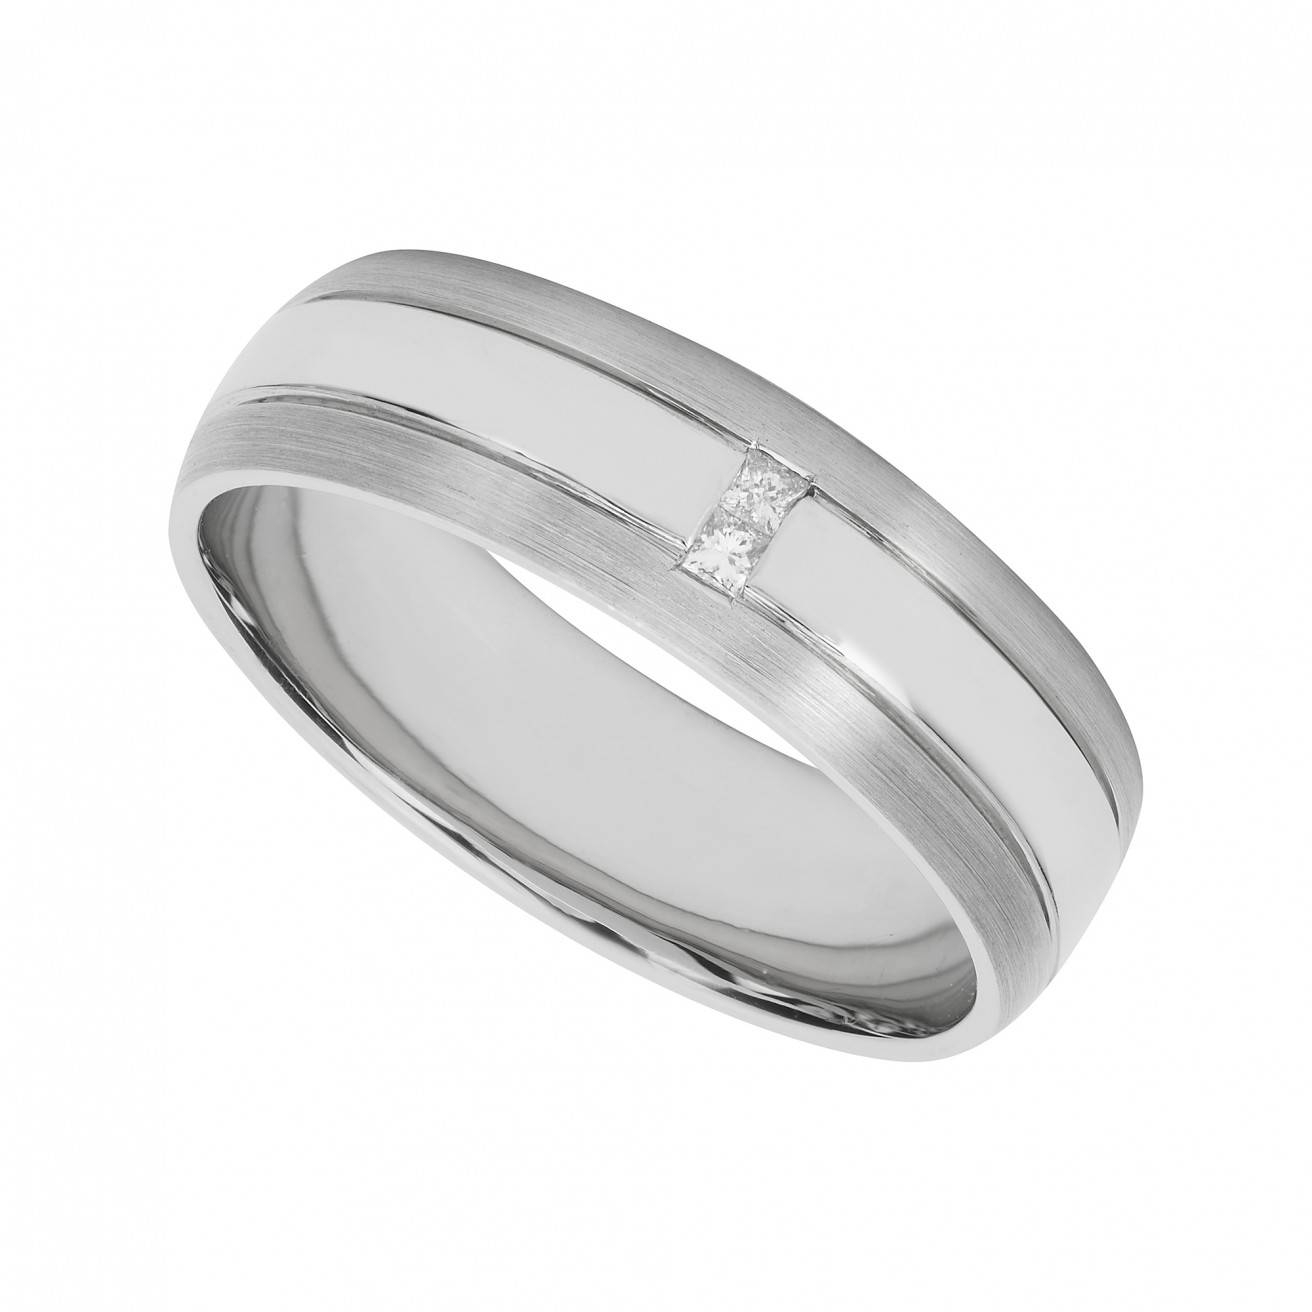 Palladium Wedding Rings Regarding Mens Palladium Wedding Rings (View 14 of 15)